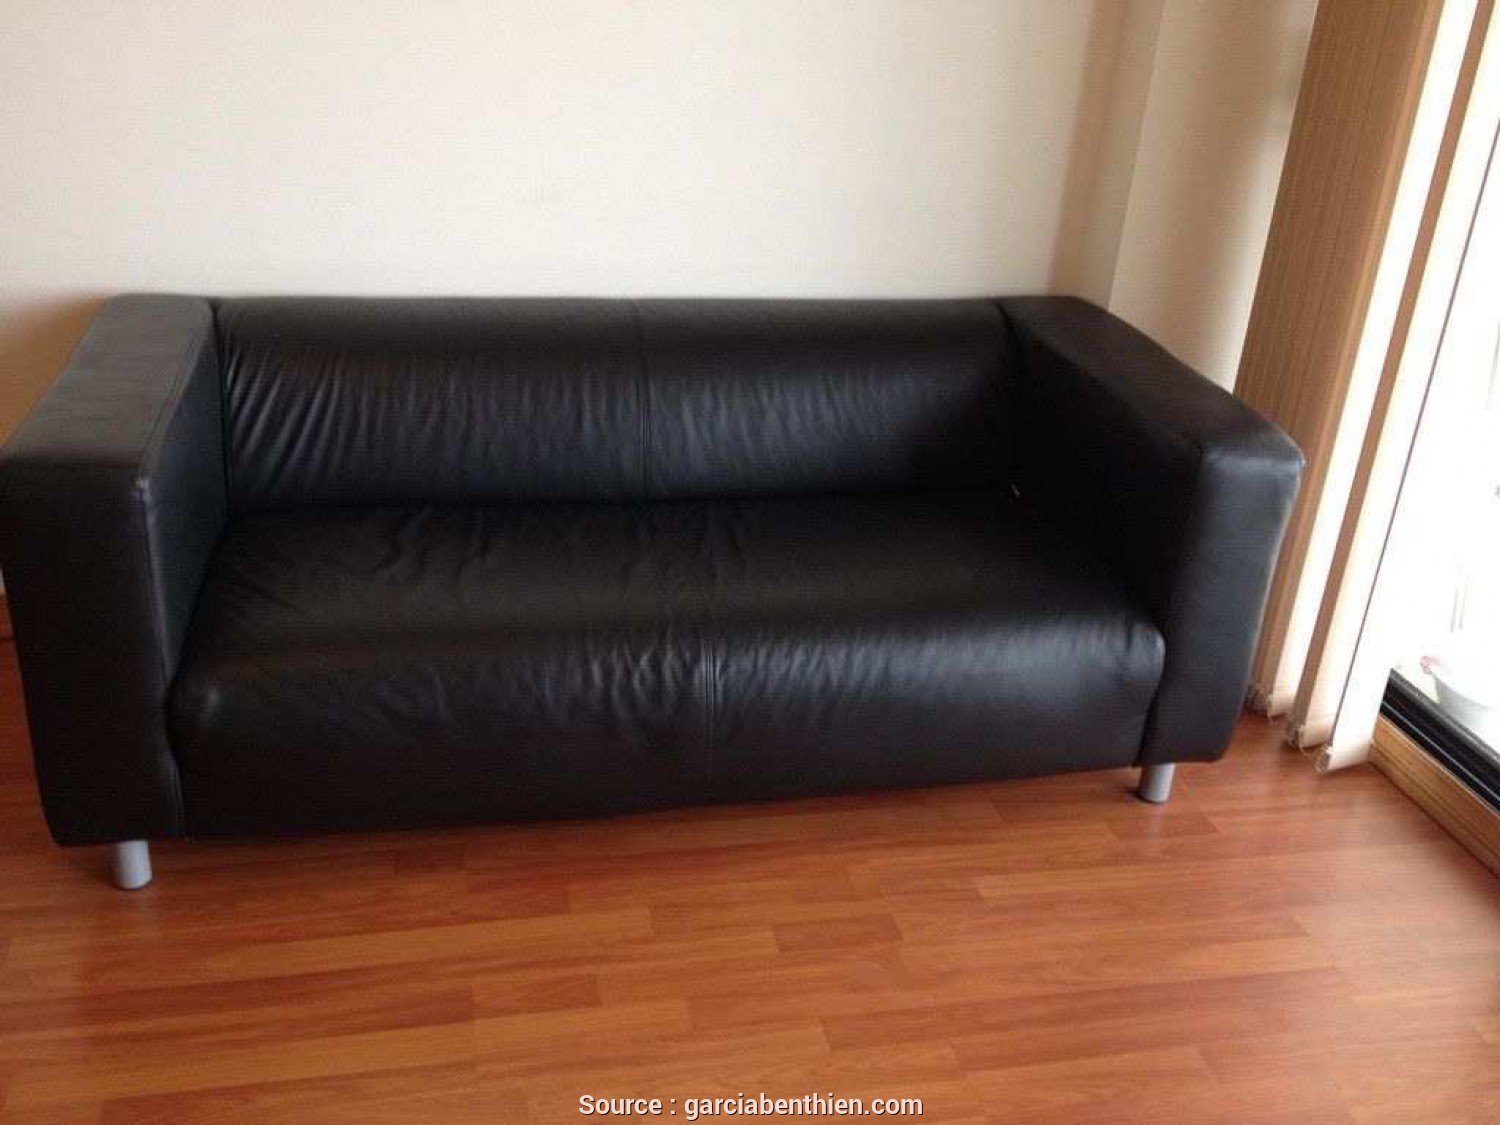 Ikea Klippan Black Leather Sofa, Incredibile ... Ikea Klippan Leather Sofa Leather Slipcover, Ikea From Luxury Ikea Black Leather Sofa